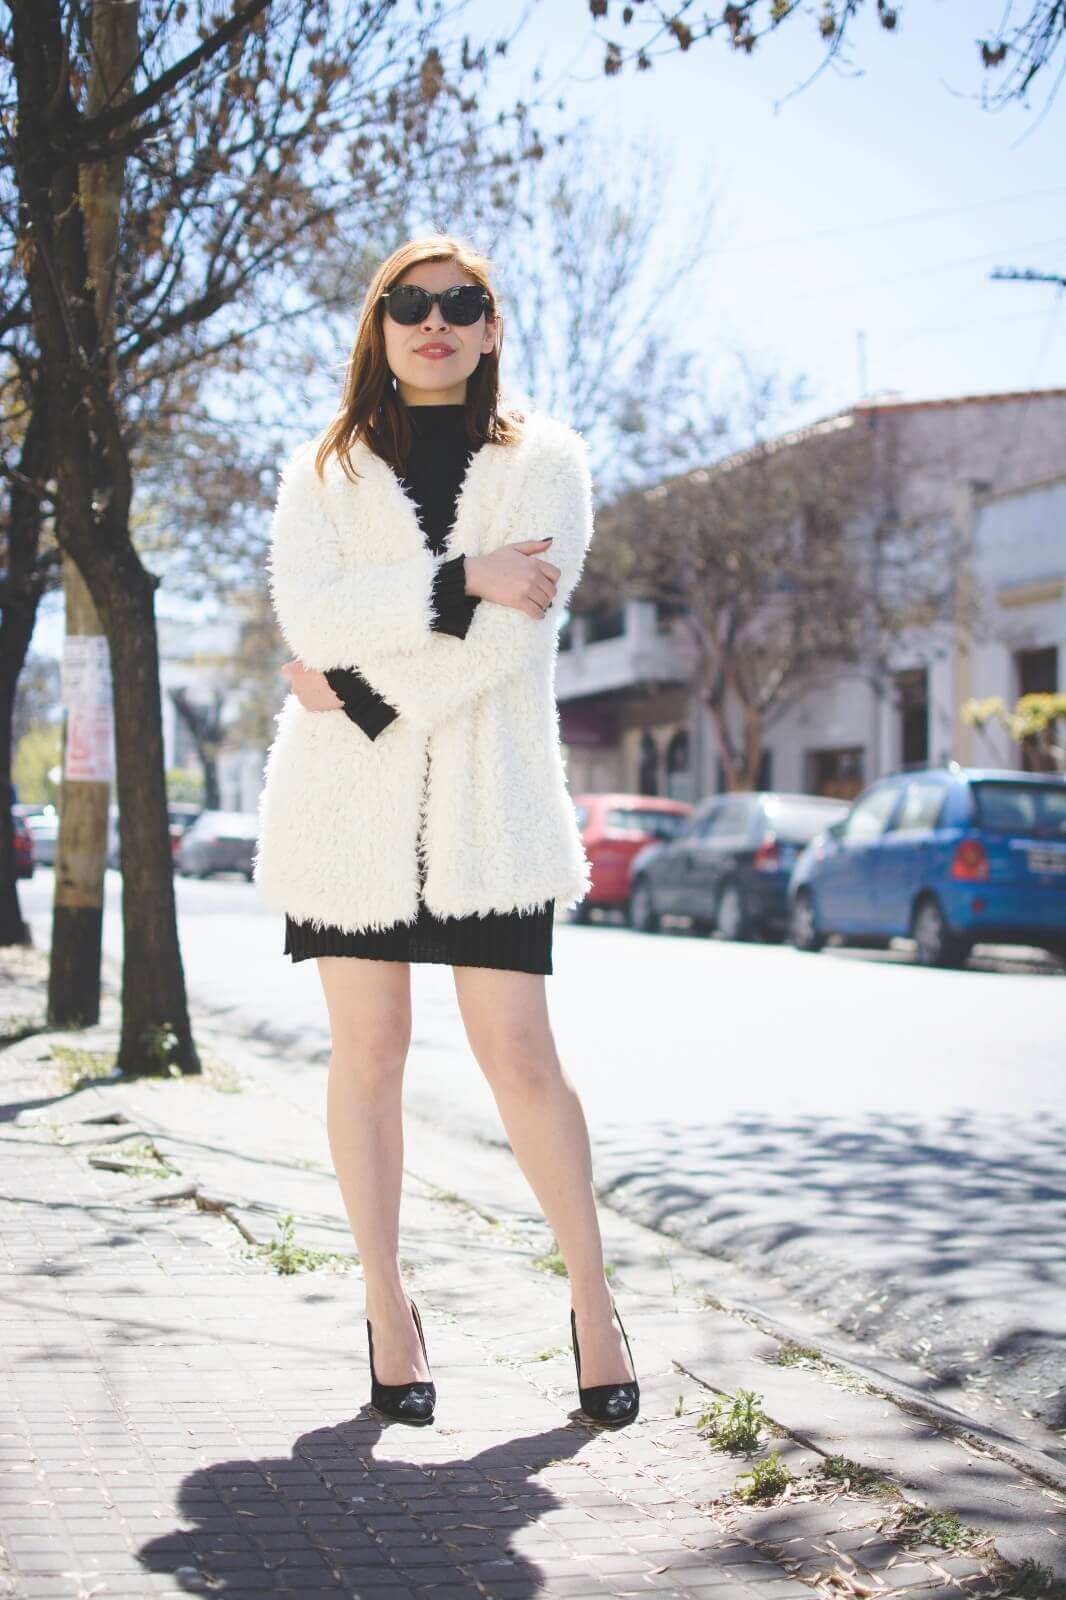 white-fluffy-coat-newchic-fall-little-black-dress-zaful-shoes-gamiss-sunglasses-deborah-ferrero-style-by-deb07